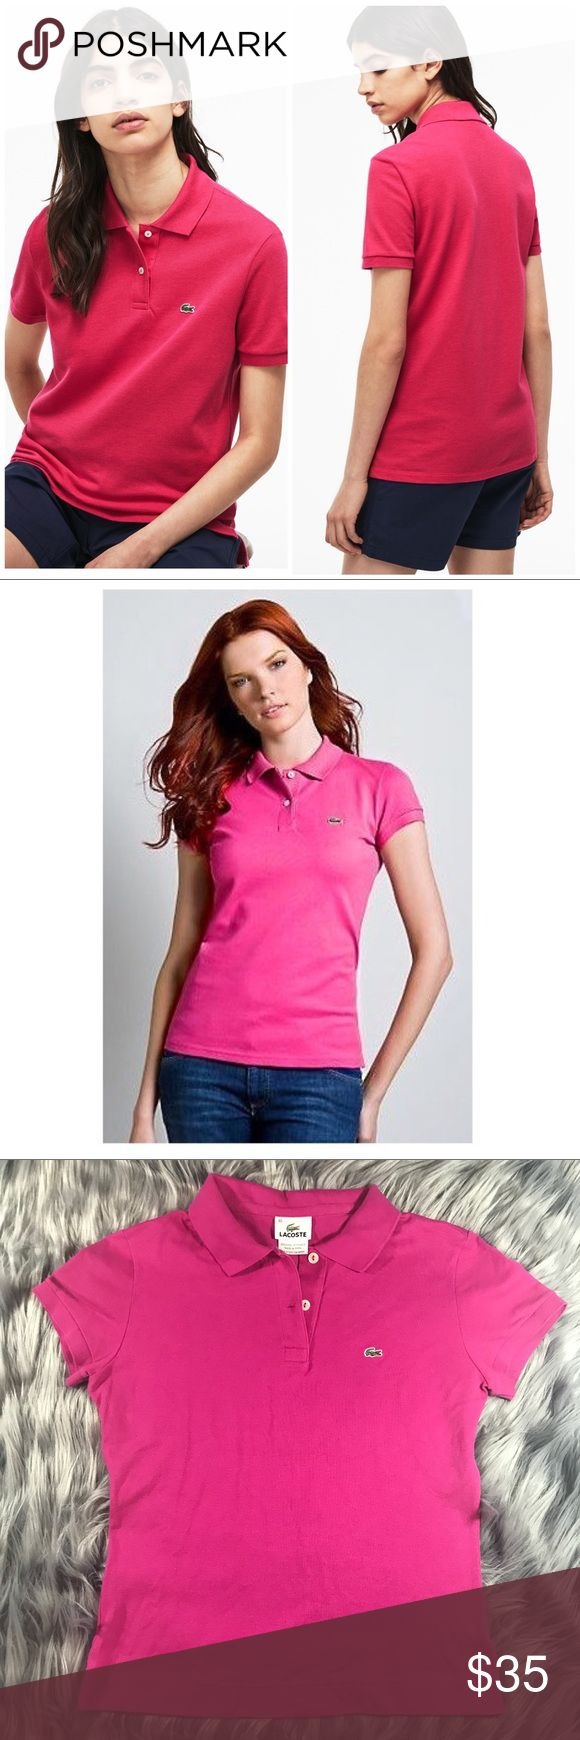 """Lacoste Womens Classic Polo Shirt sz 40 Medium Lacoste Womens Classic Polo Shirt in Hot Pink. Size 40 or Medium (please see last photo for Lacoste size chart) Lacoste womens classic style polos are a great look that never goes out of fashion!! Two-button placket ribbed polo collar and armbands vented hem signature pique fabric has long-term color fastness increased stability to minimize shrinkage and abrasion resistance Signature Croc applique accents chest Measurements: Bust 17"""" Overall…"""